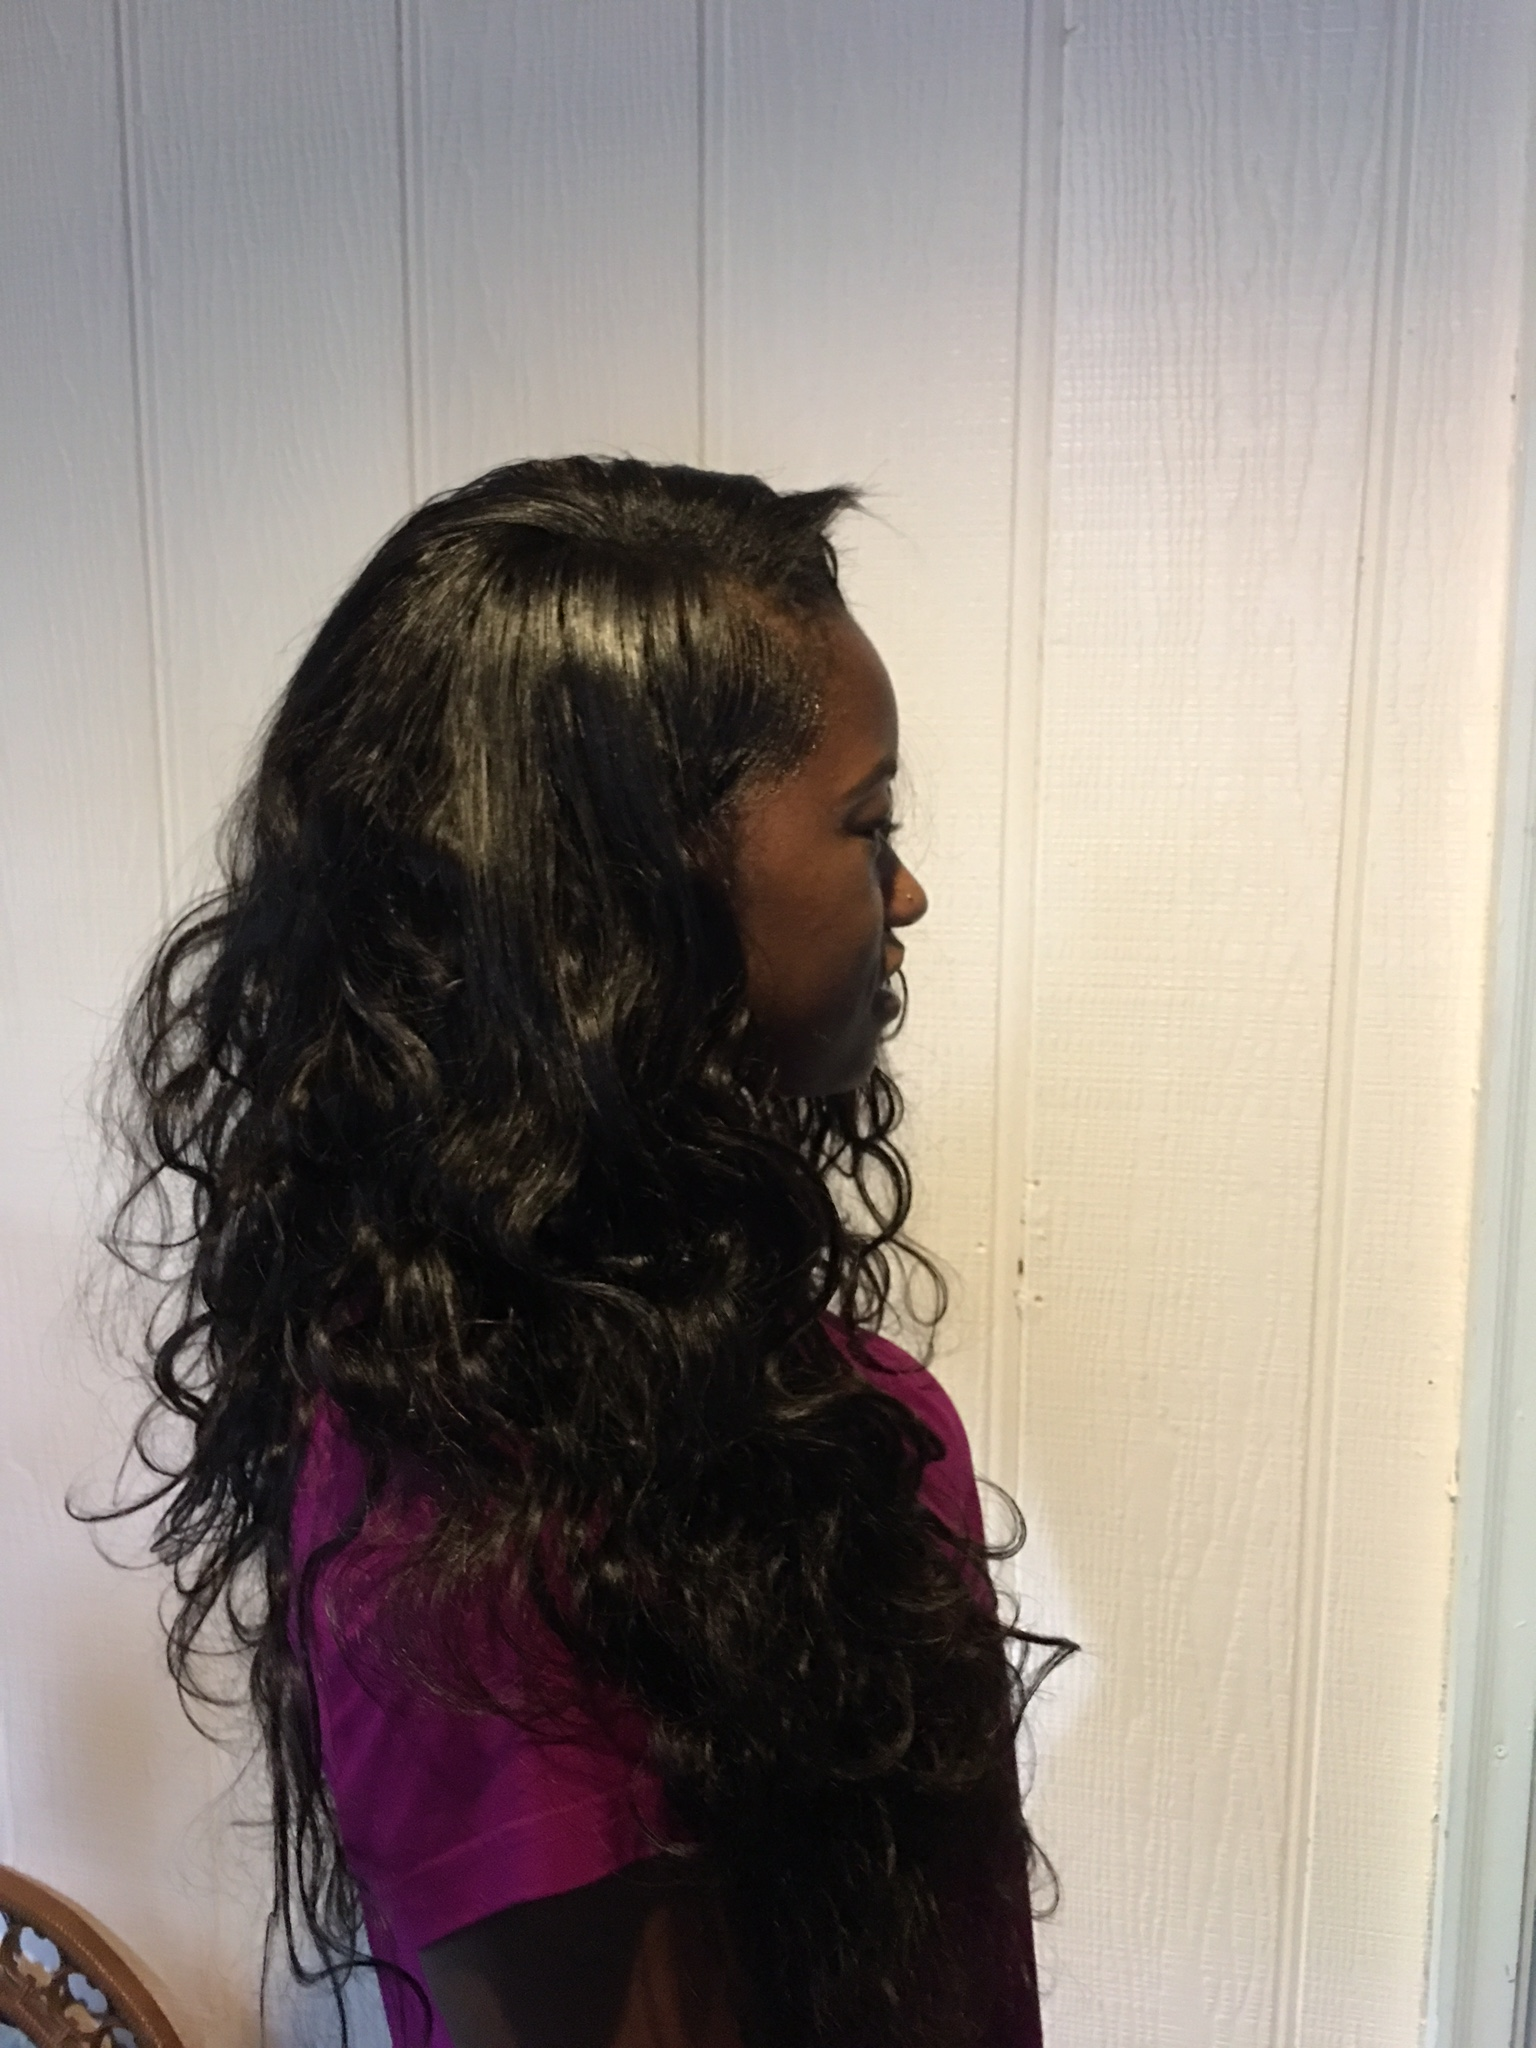 Sew Ins By Alyson 25 DEPOSIT REQUIRED TO BOOK WILL